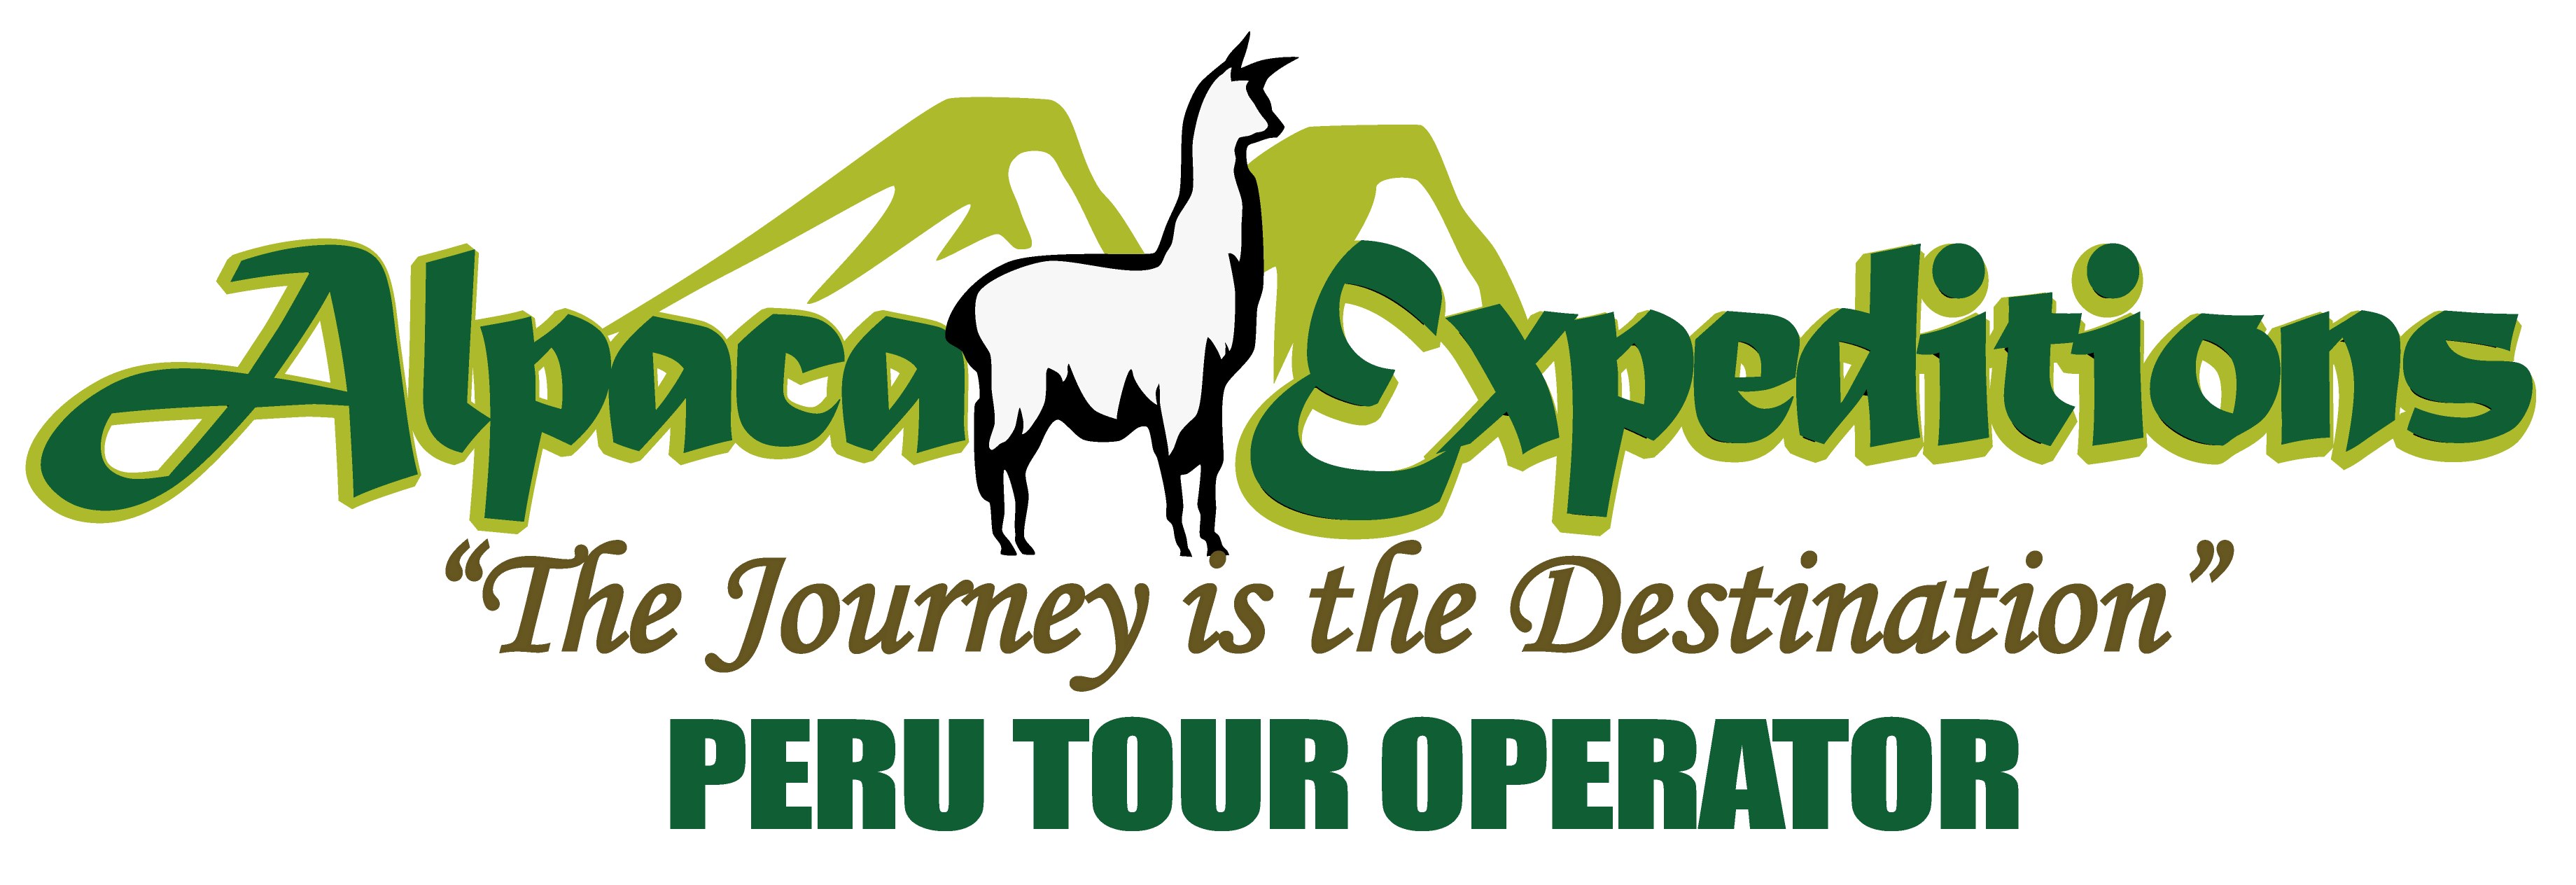 0 alpca-expeditions-eirl-2018-cusco-peru-inca-trail-availability